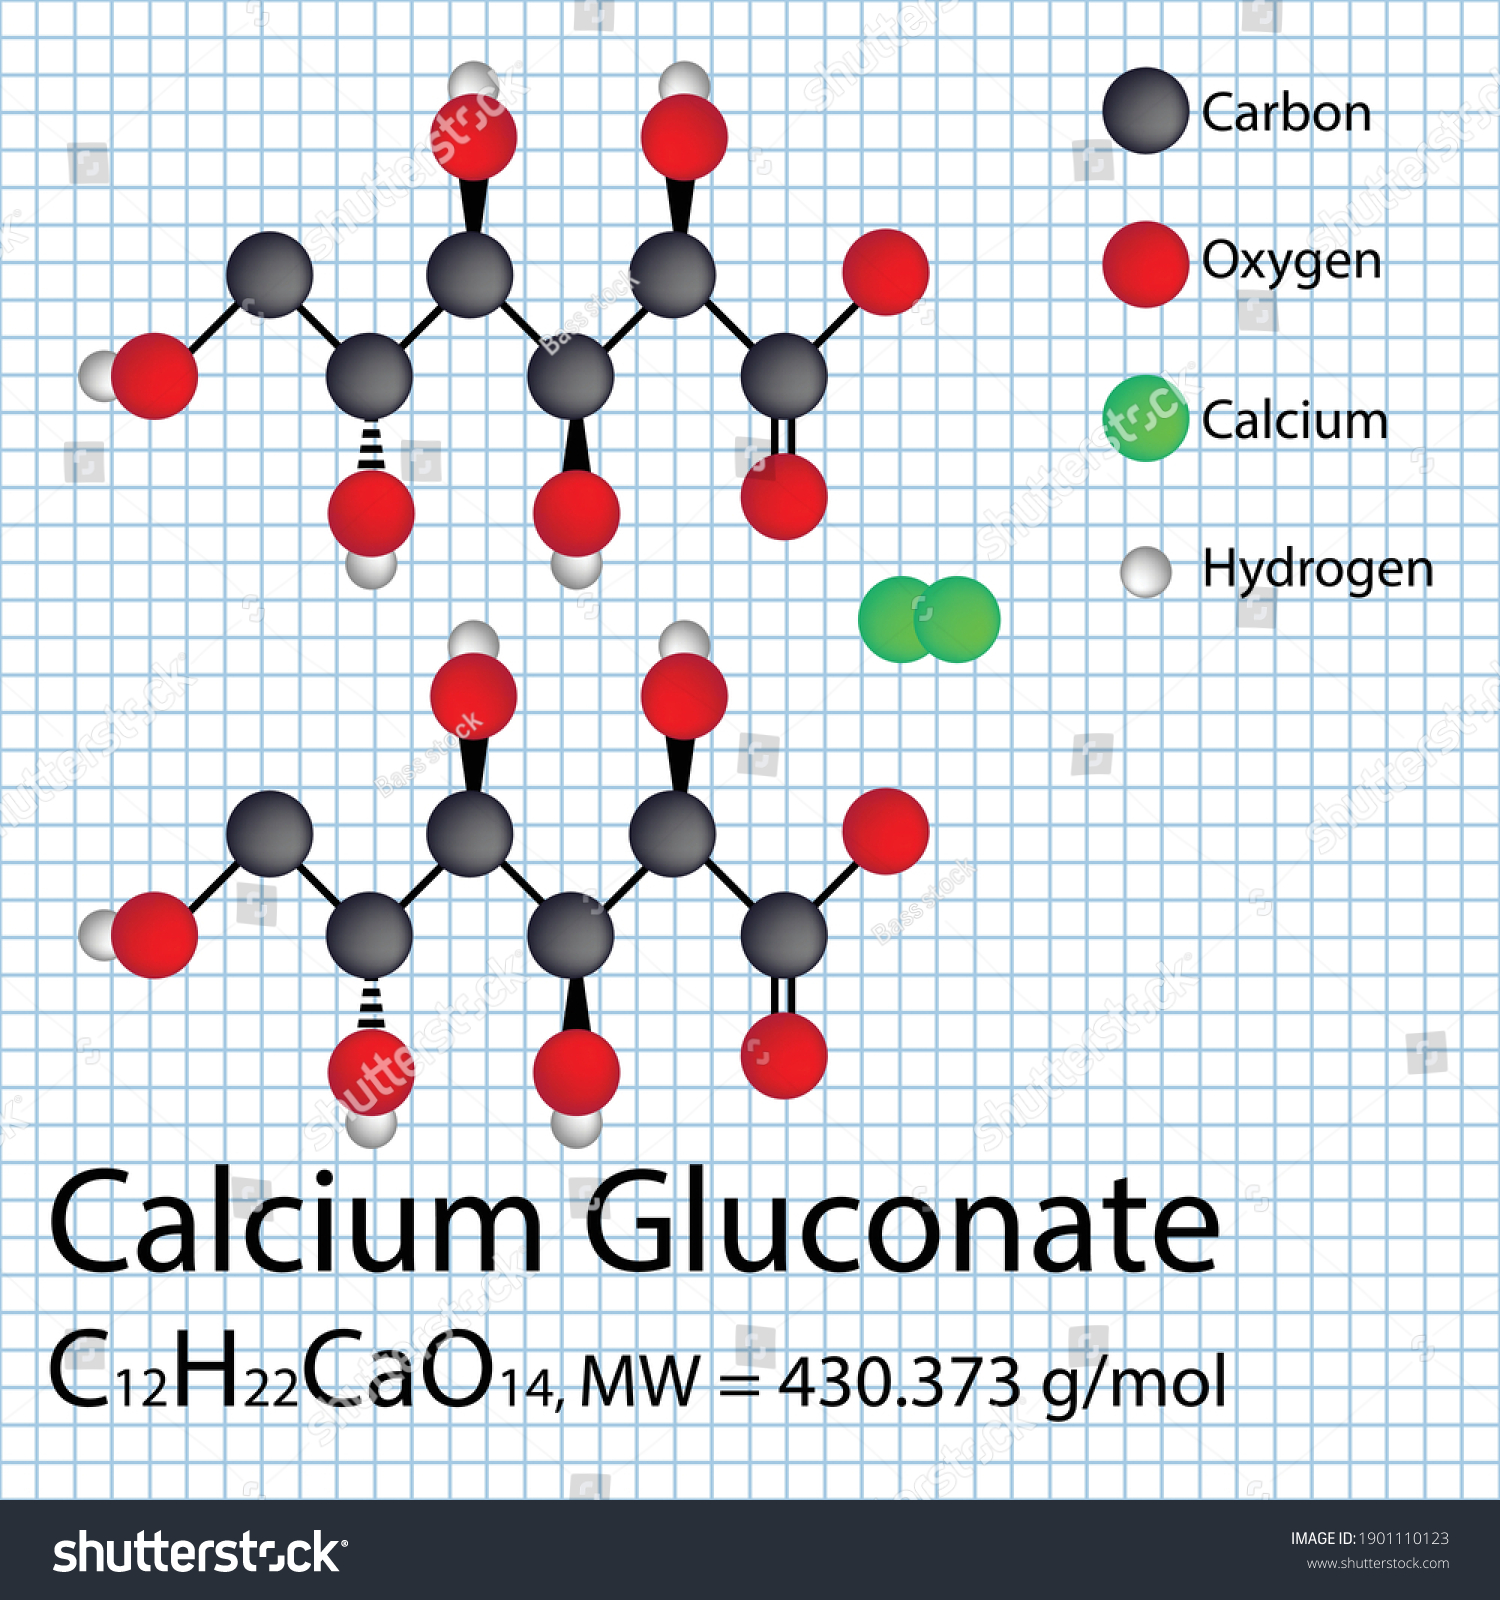 stock-vector-calcium-gluconate-chemical-formula-with-molecular-weight-d-ball-and-stick-molecular-structure-on-1901110123.jpg